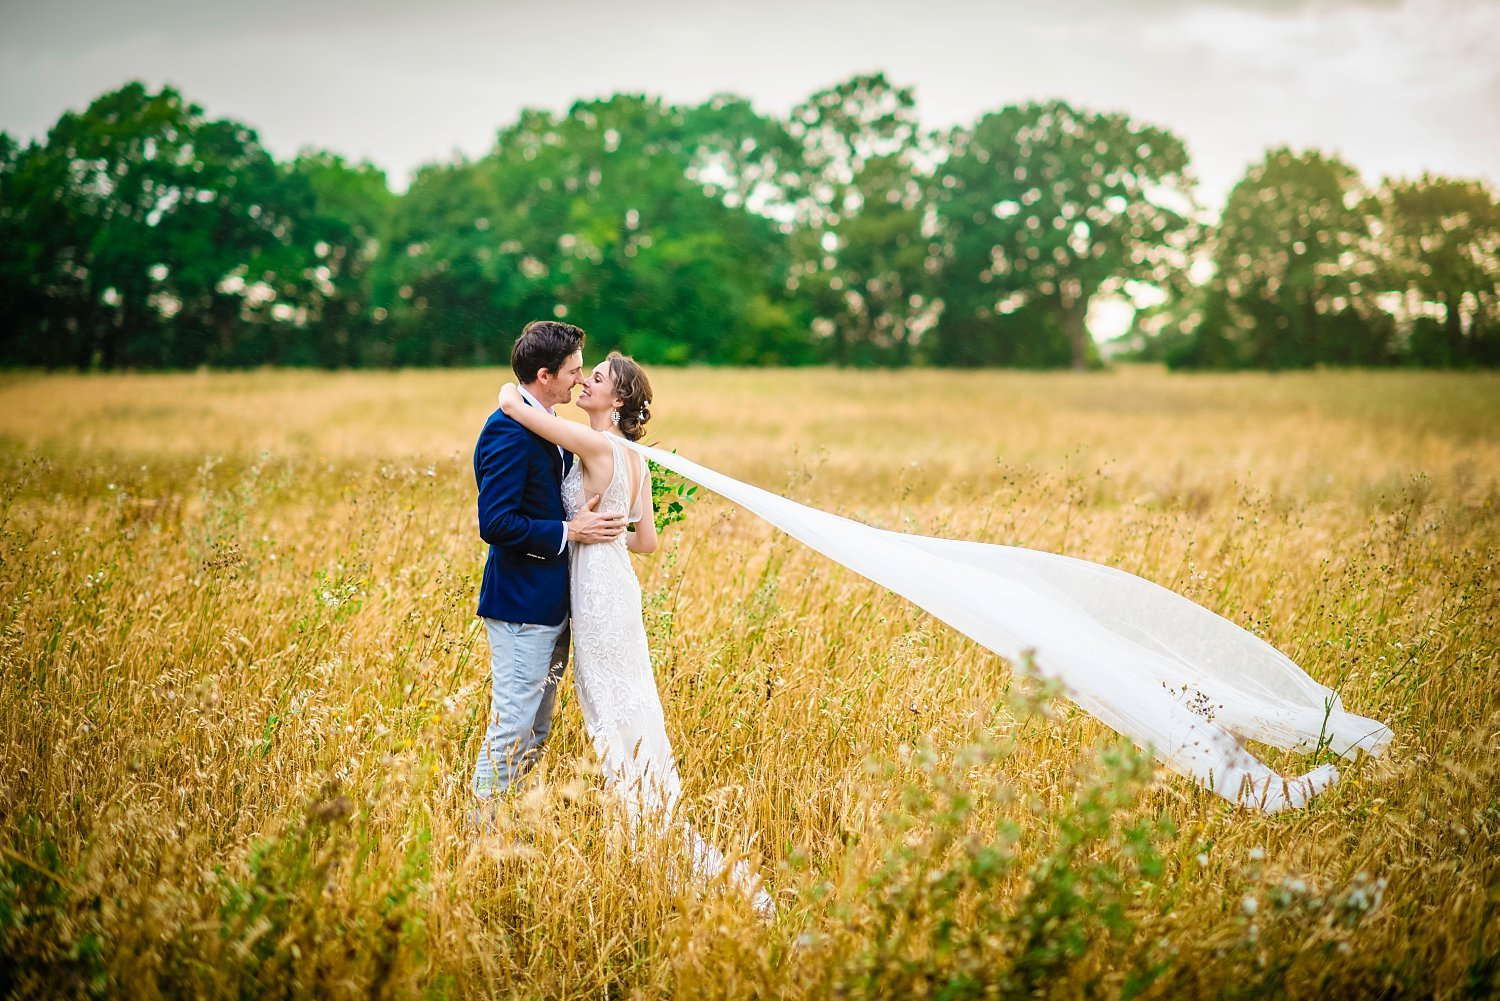 Colville Hall Weding Photographer-bride and groom are cuddling in the field.